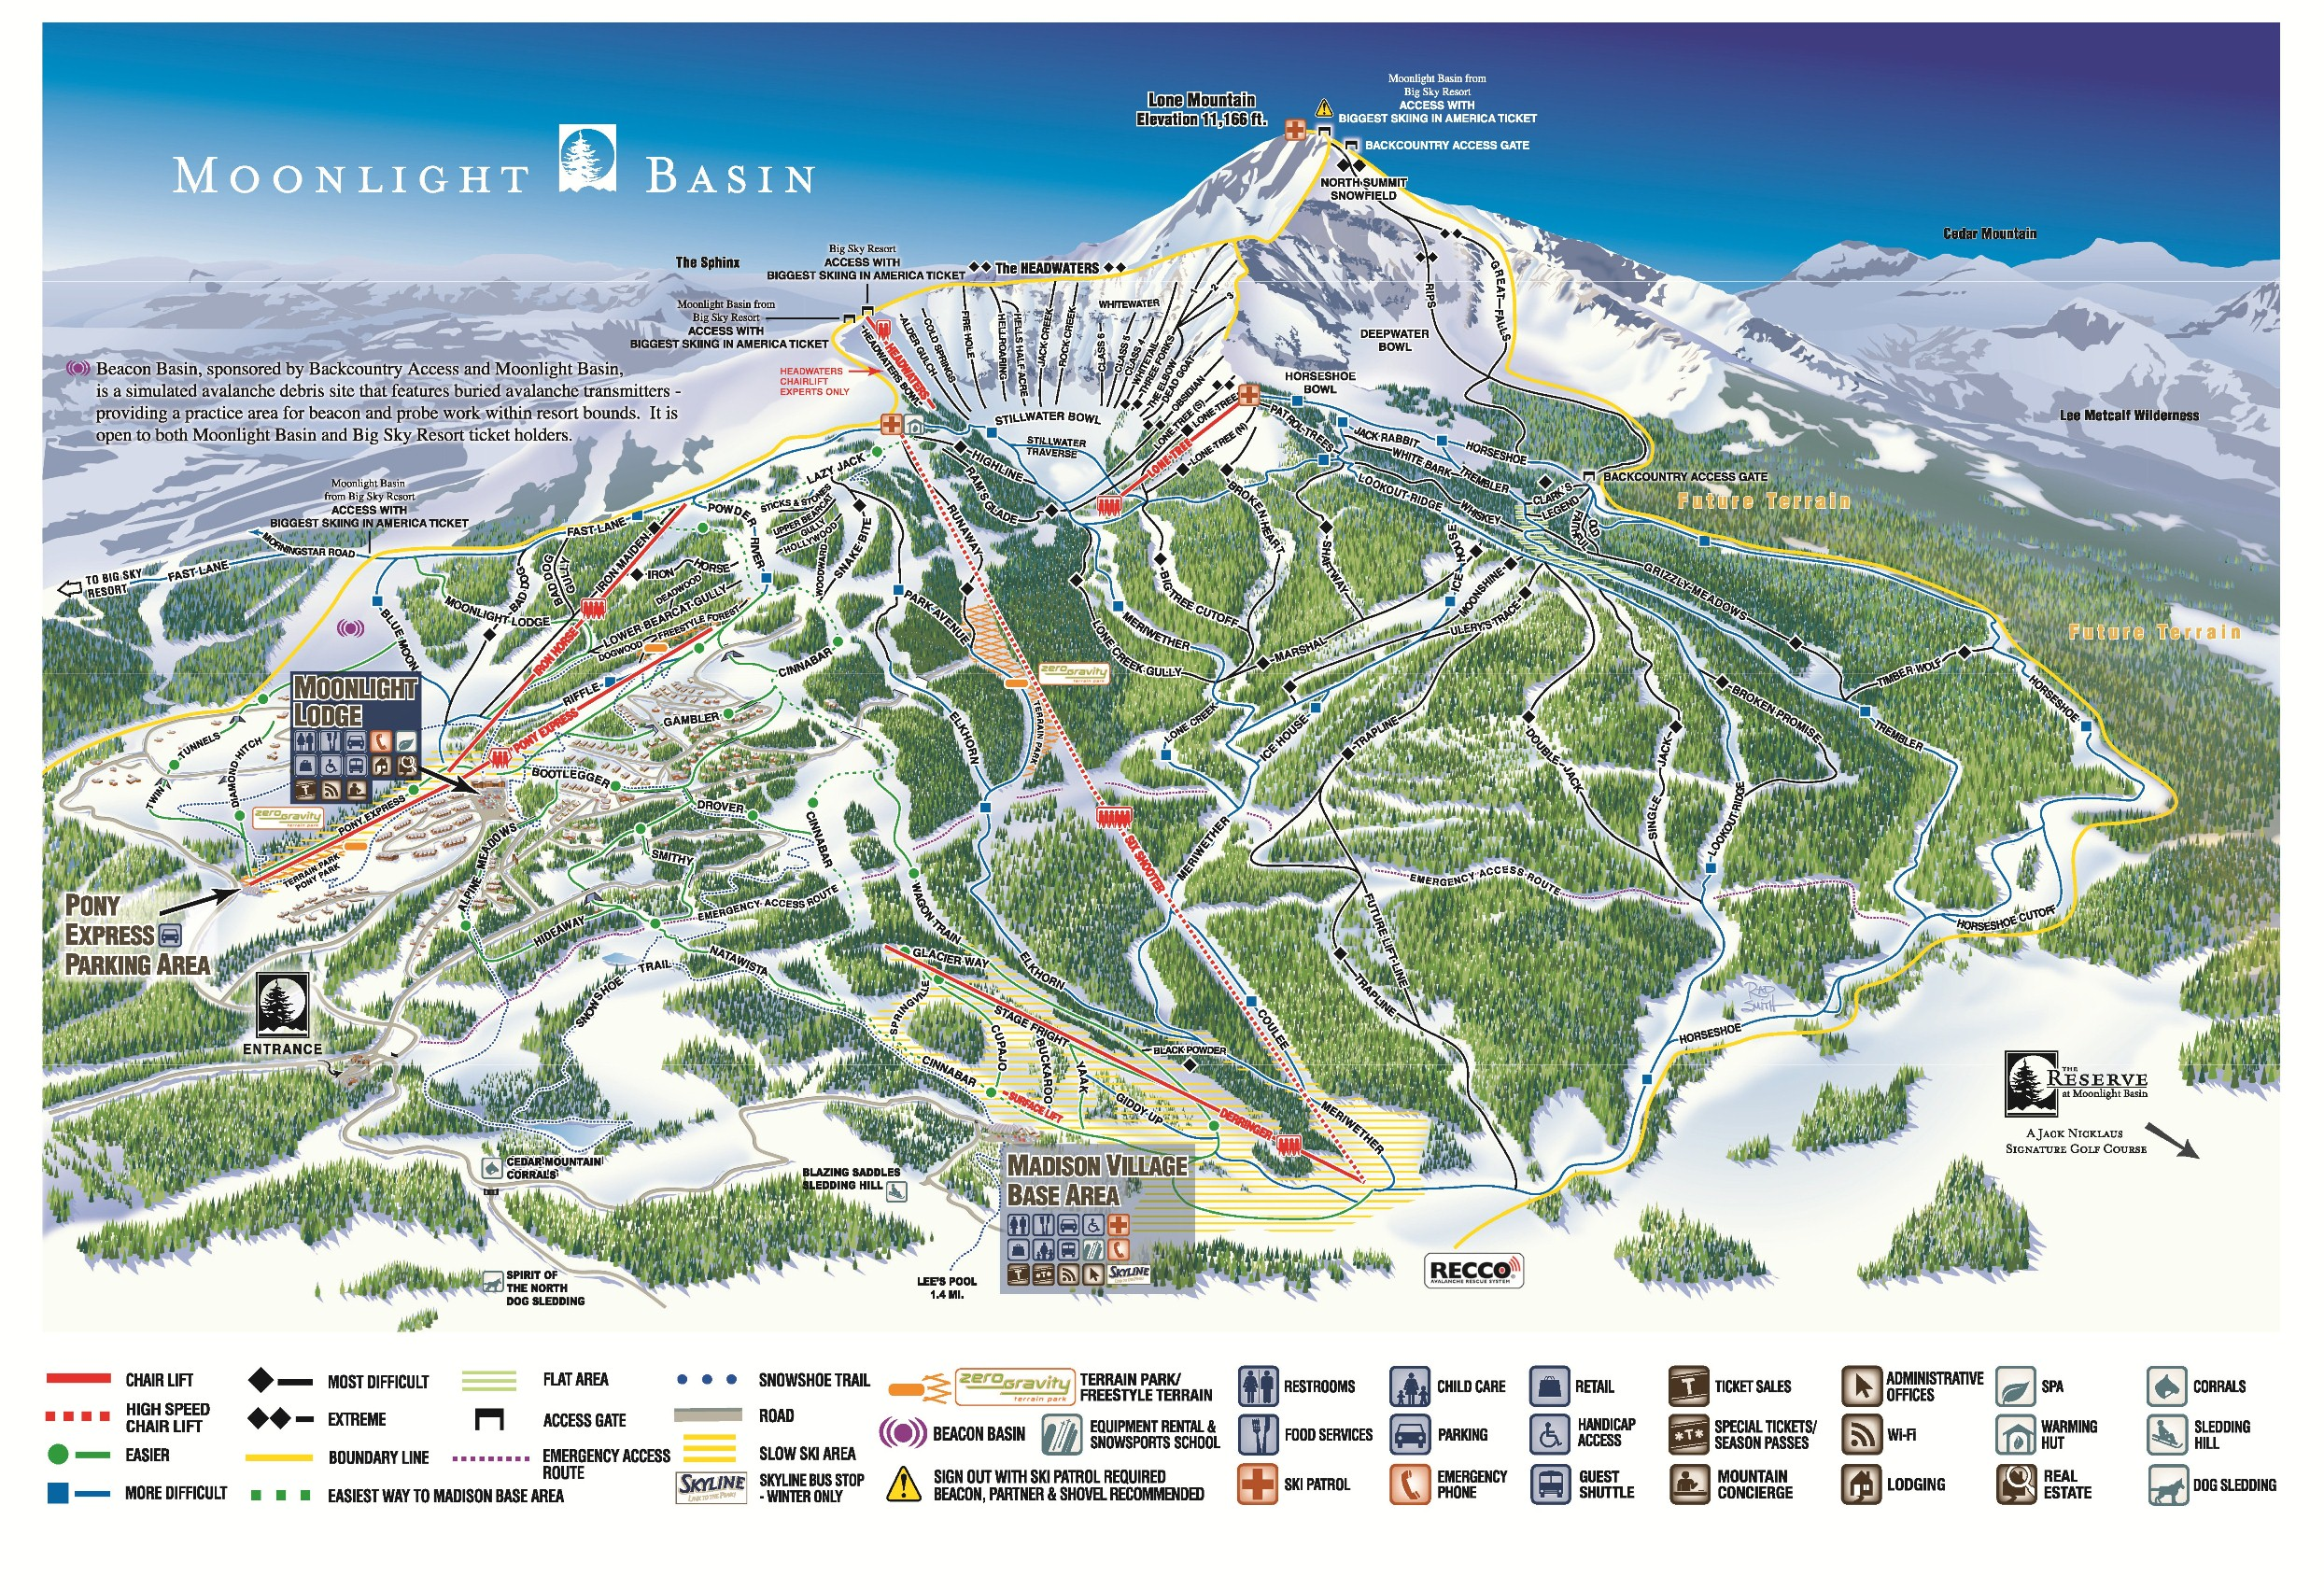 yellowstone club trail map with 373 on Big Skymt Moonlight Basin Mt  bine To Form Largest Ski Resort In Usa furthermore Hot Girls Fishing furthermore Green Acres 59 National Parks Map further Largest National Parks In United States likewise 344936 Wiring Diagram Kudaki 250cc.